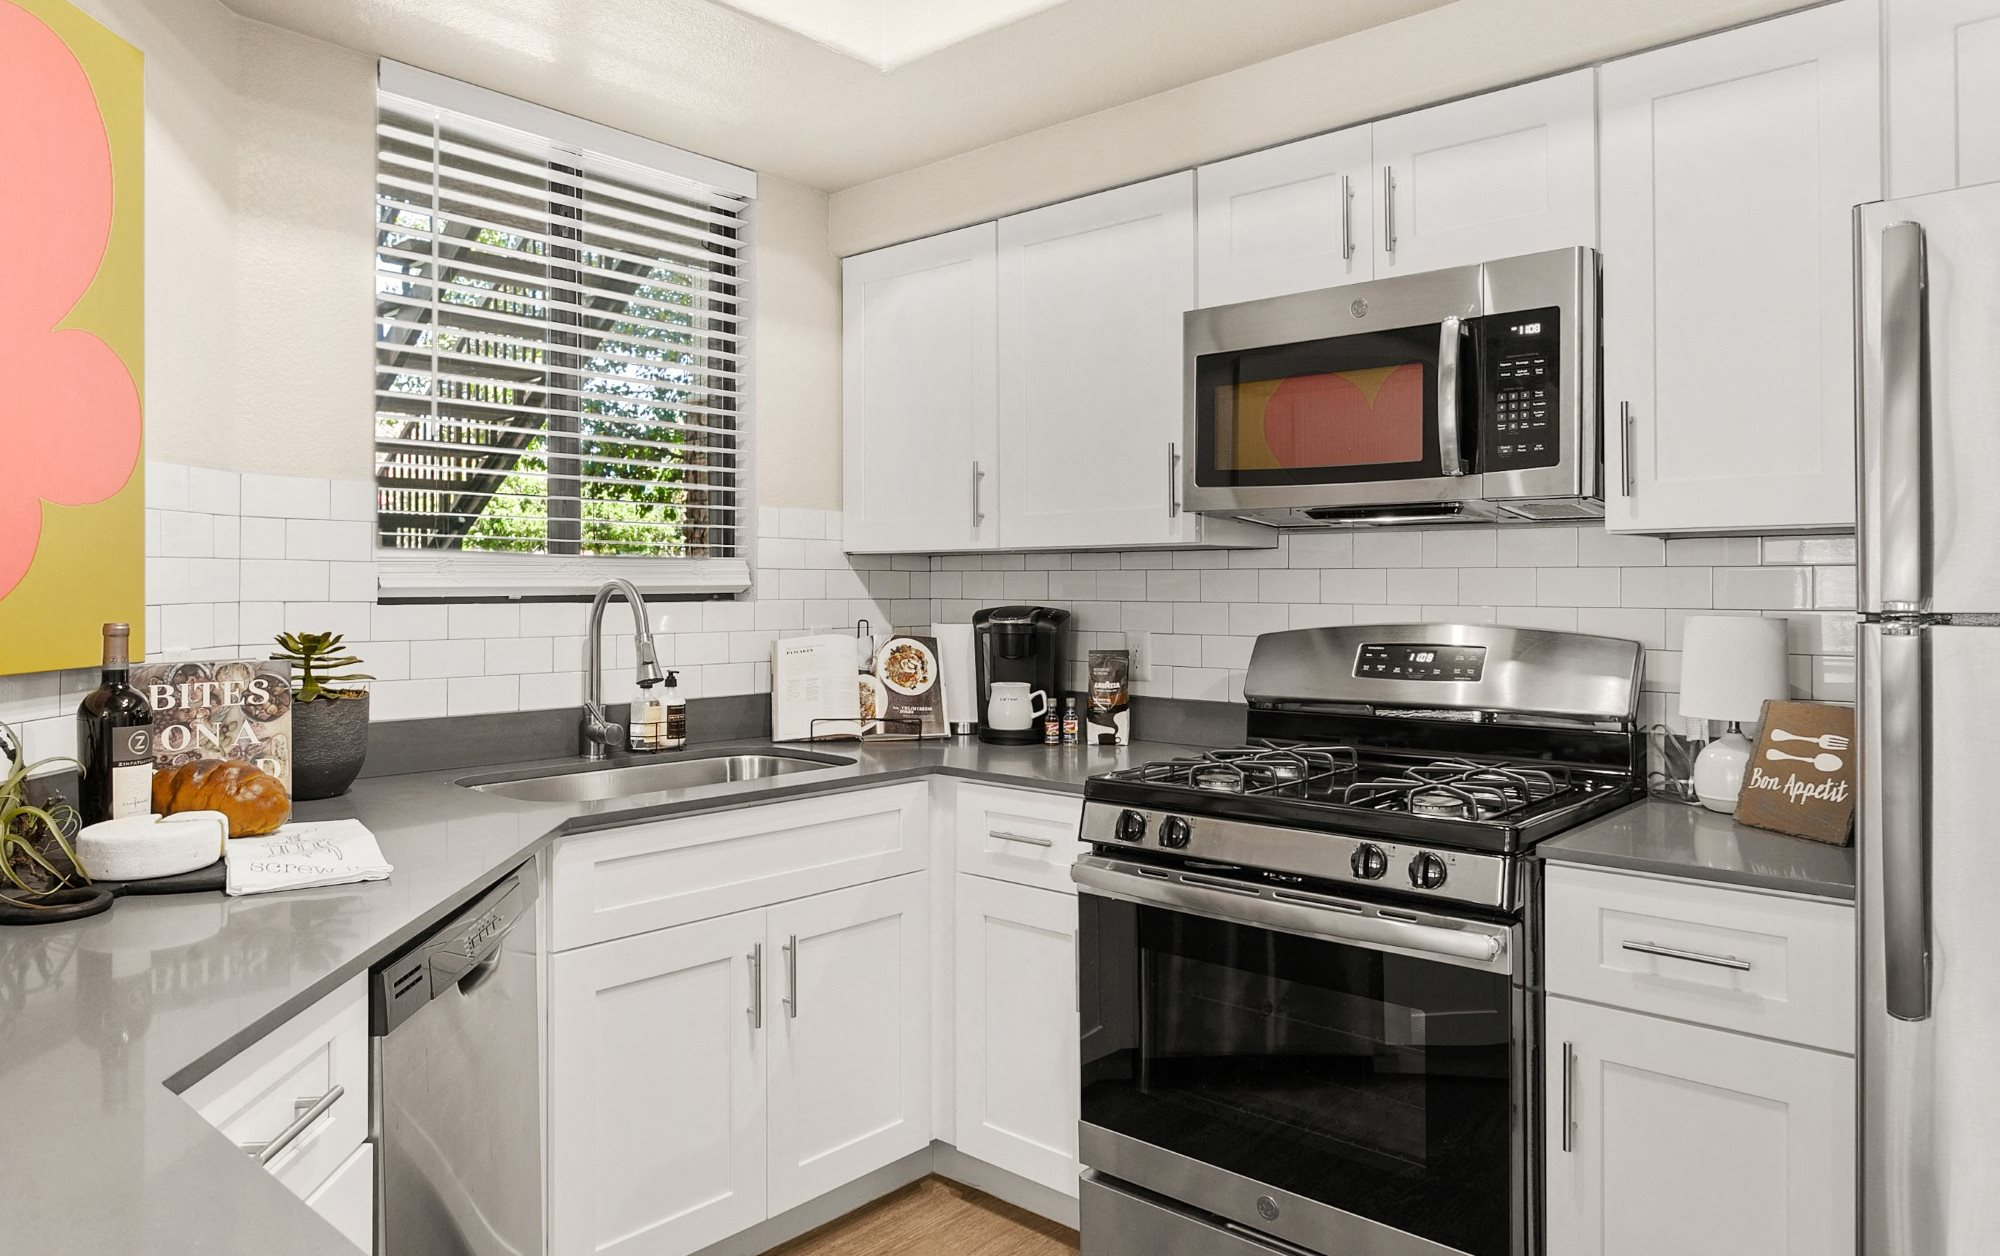 San Portella Apartments Kitchen Counter and Appliances